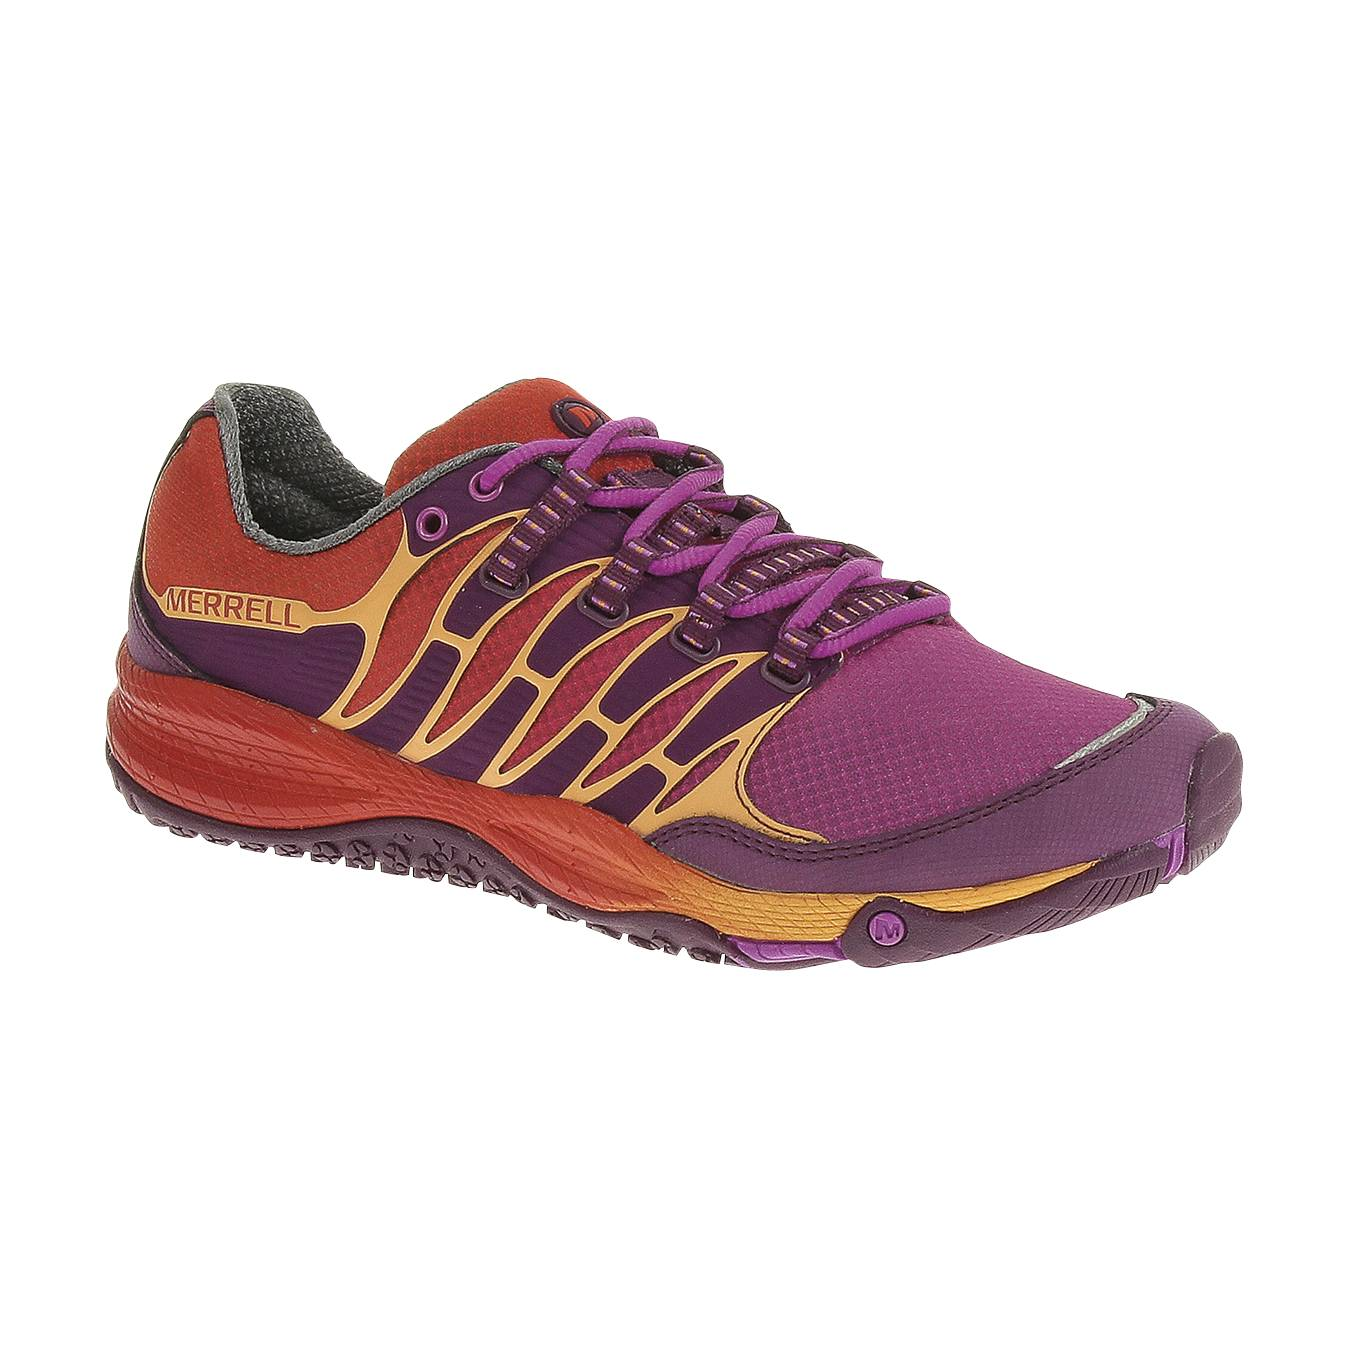 The Merrell Allout Fuse